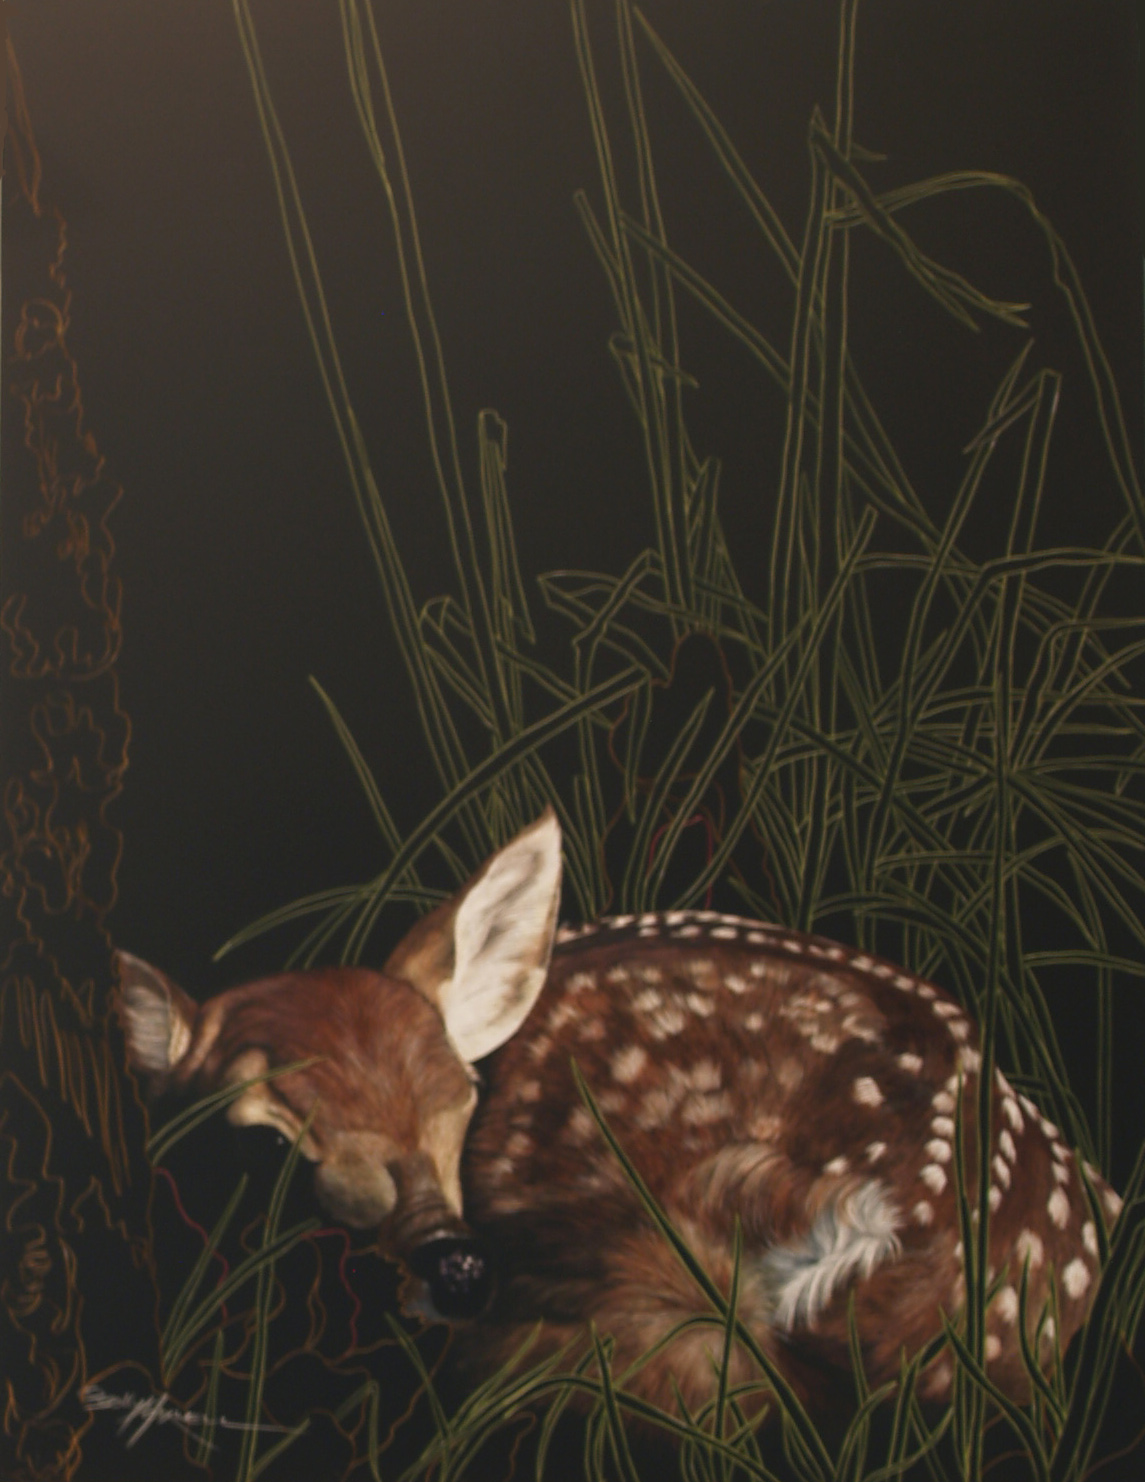 fawn cropped and fixed.jpg